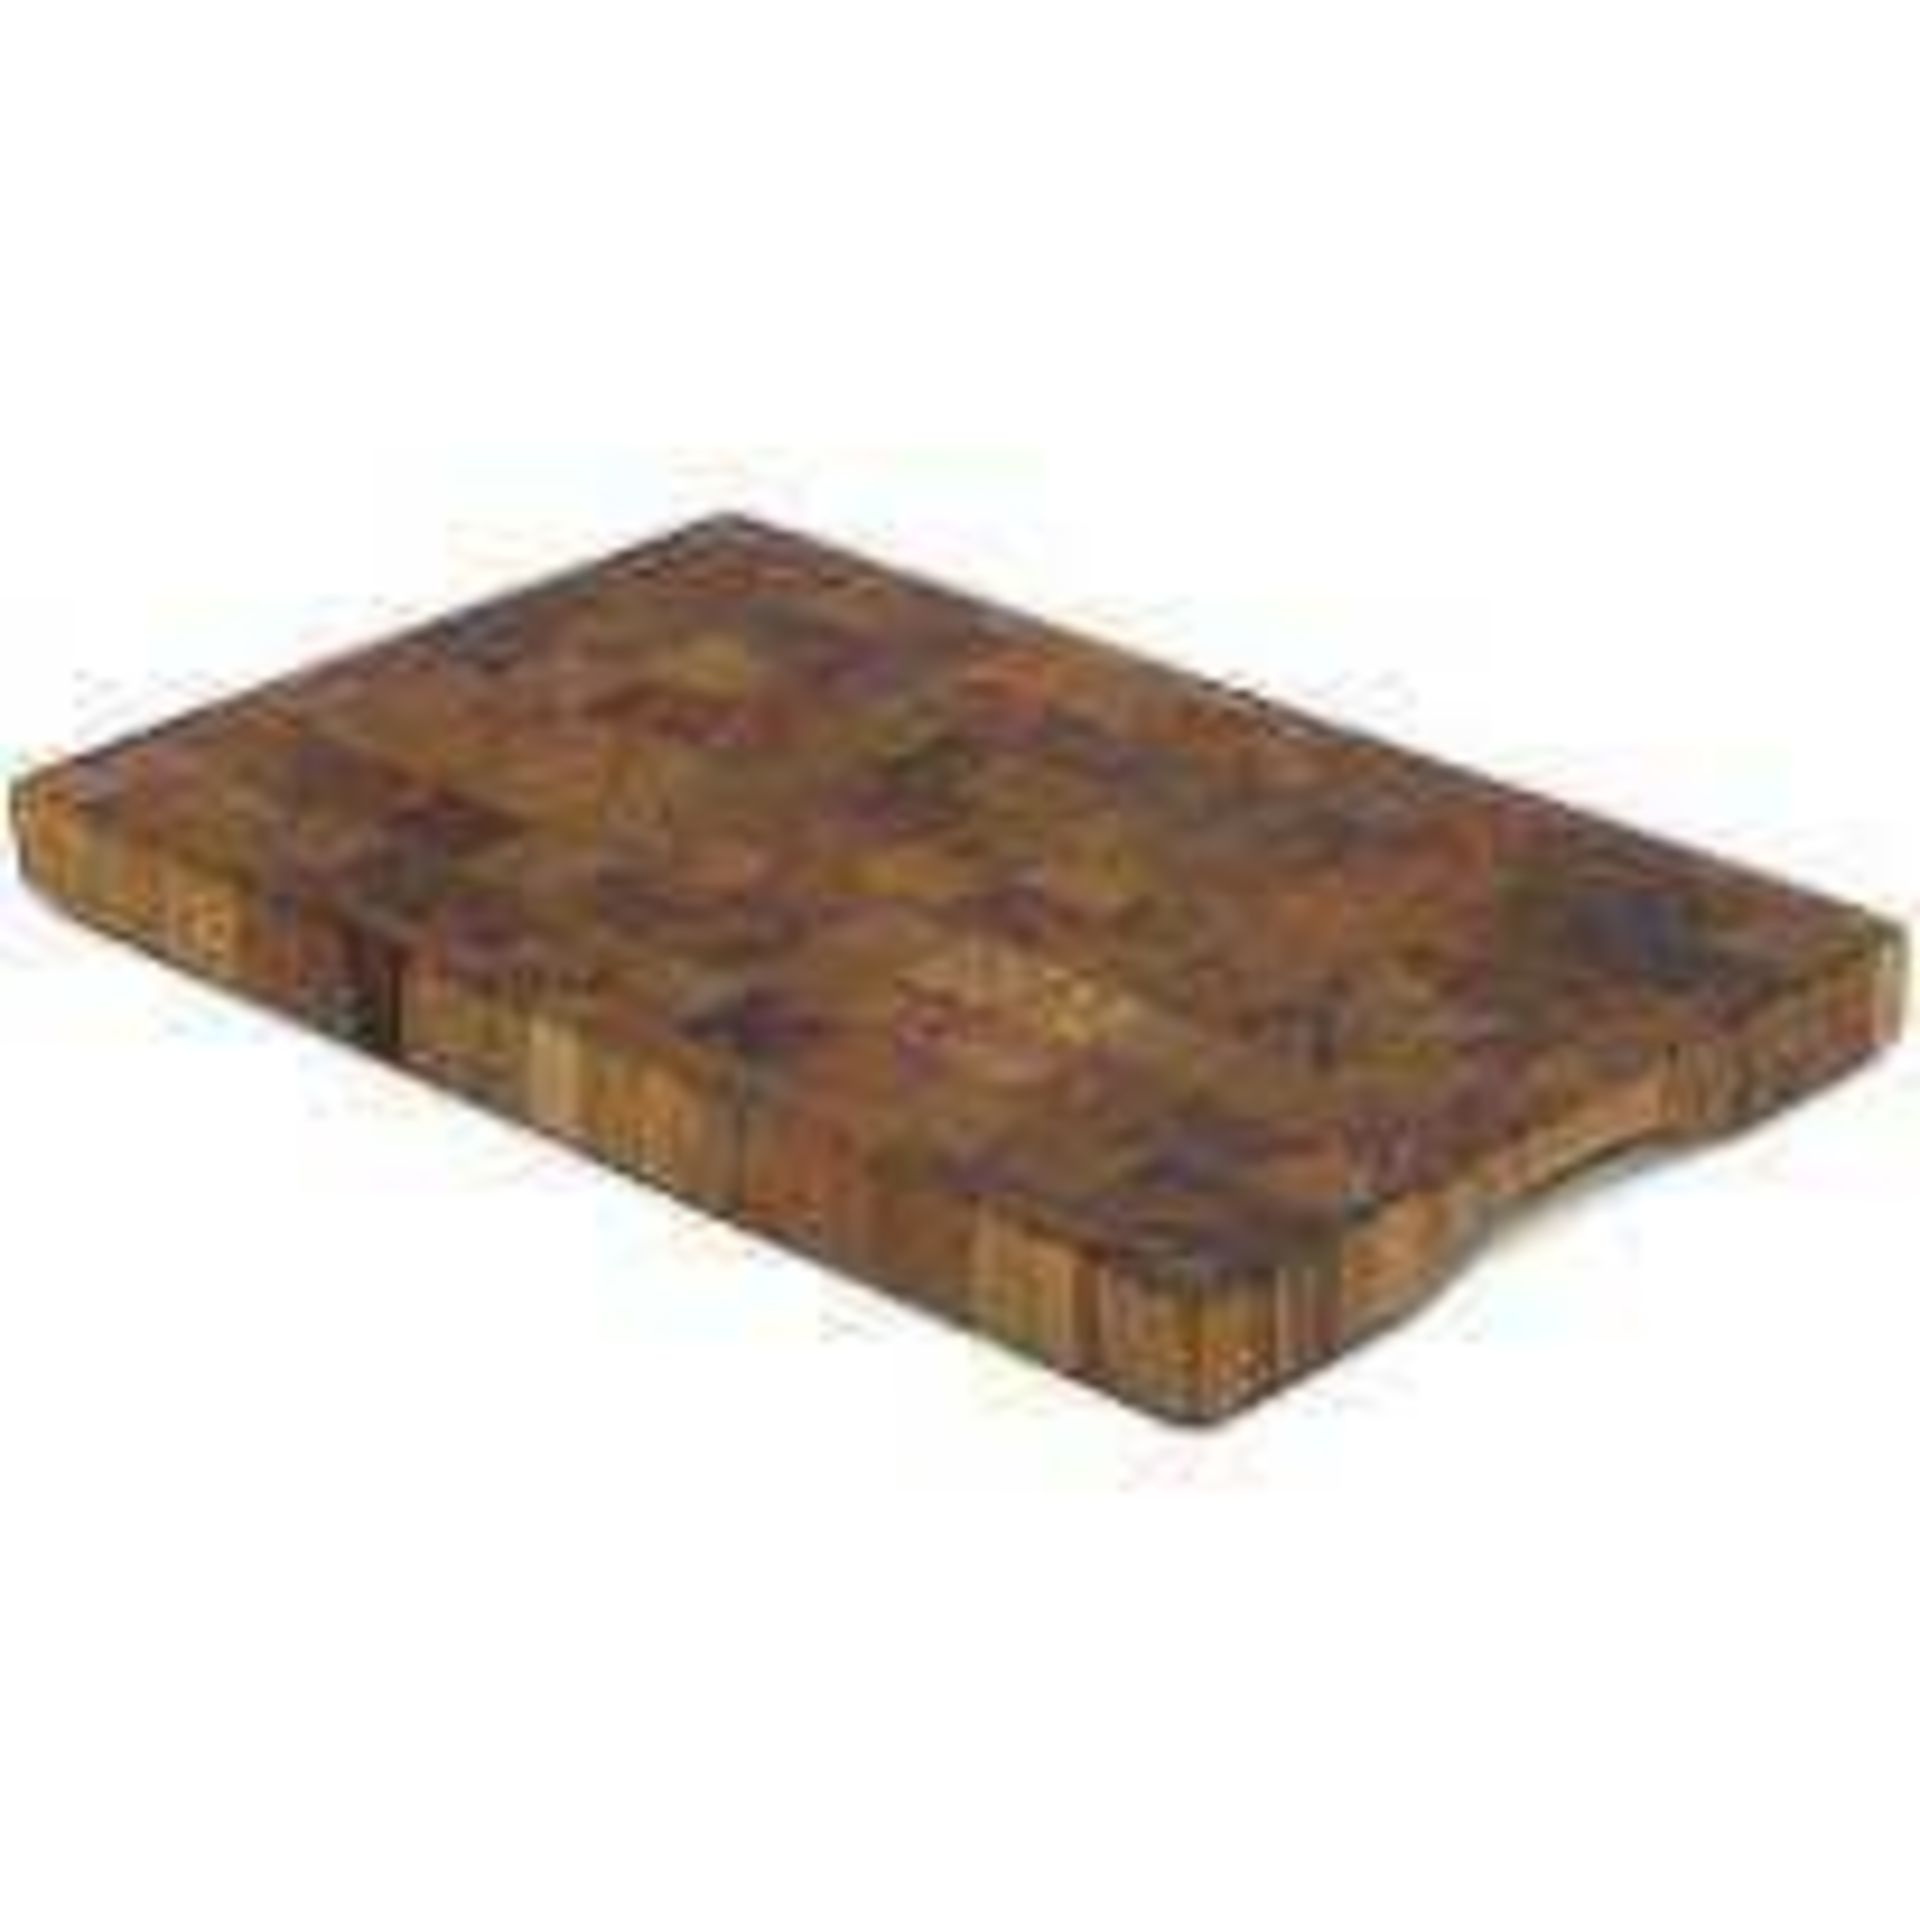 RRP £40 To £50 Each Assorted John Lewis Chopping Blocks To Include Butchers Block And Wooden Slice B - Image 2 of 2